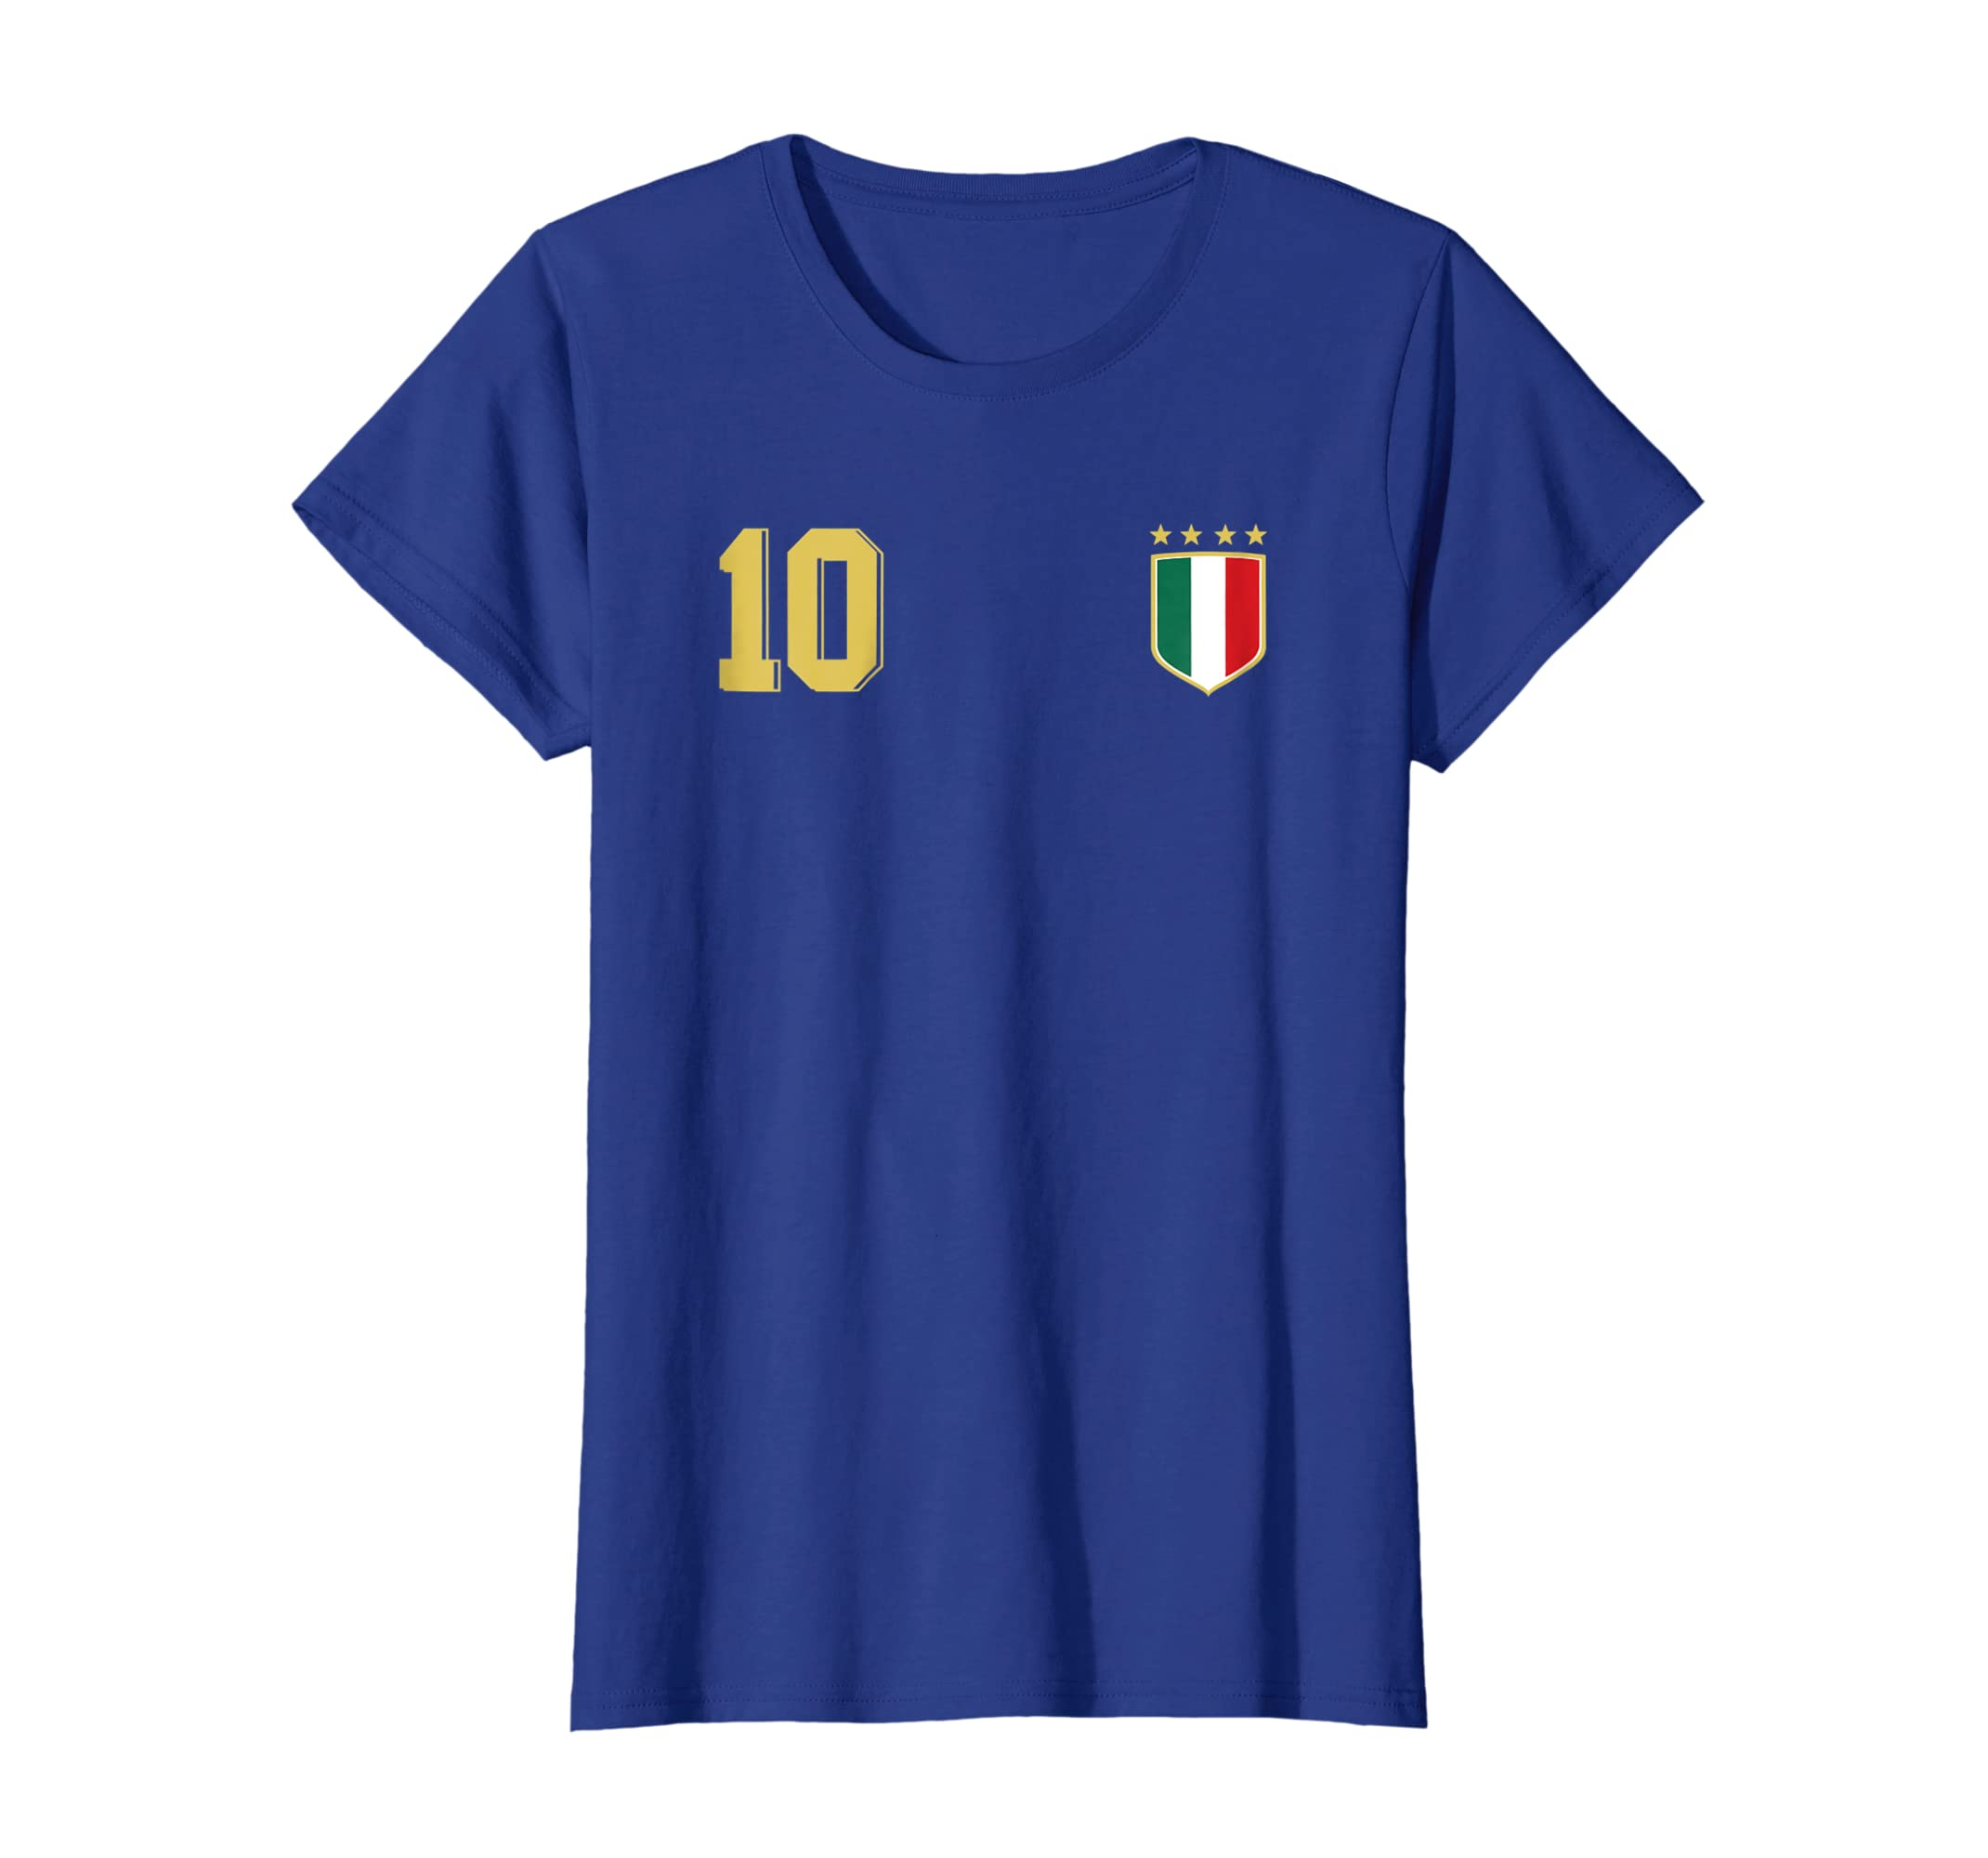 2d1558de25d Amazon.com  Retro Italy Soccer Jersey Italia Football T-Shirt Calcio 10   Clothing